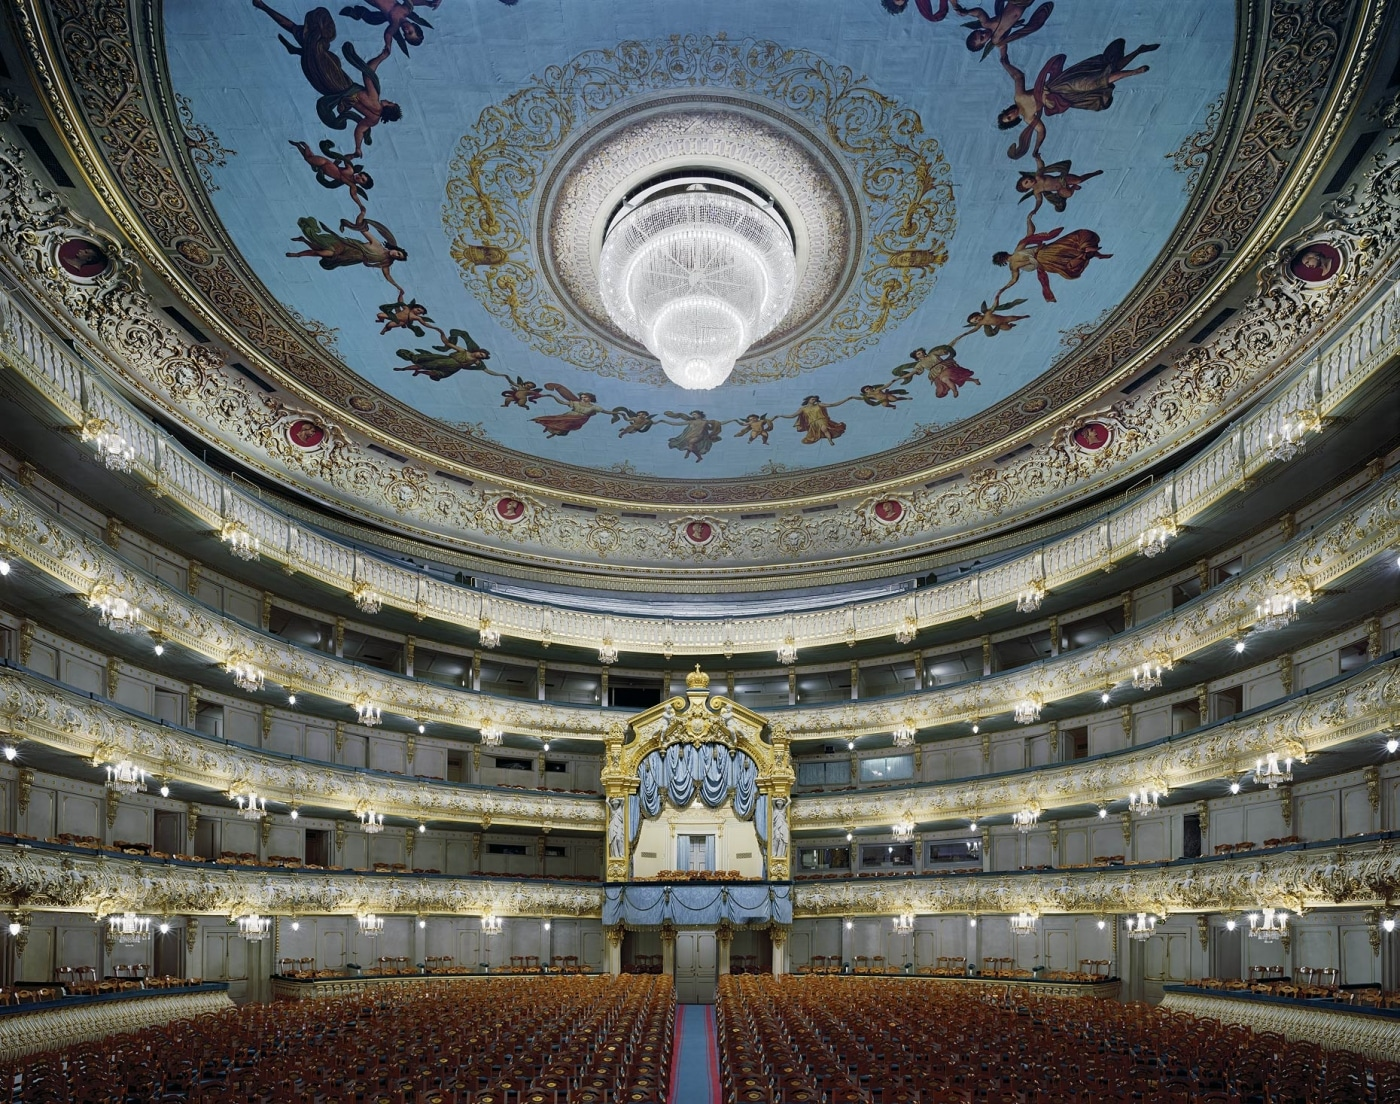 The Most Beautiful Opera Houses from Around the World